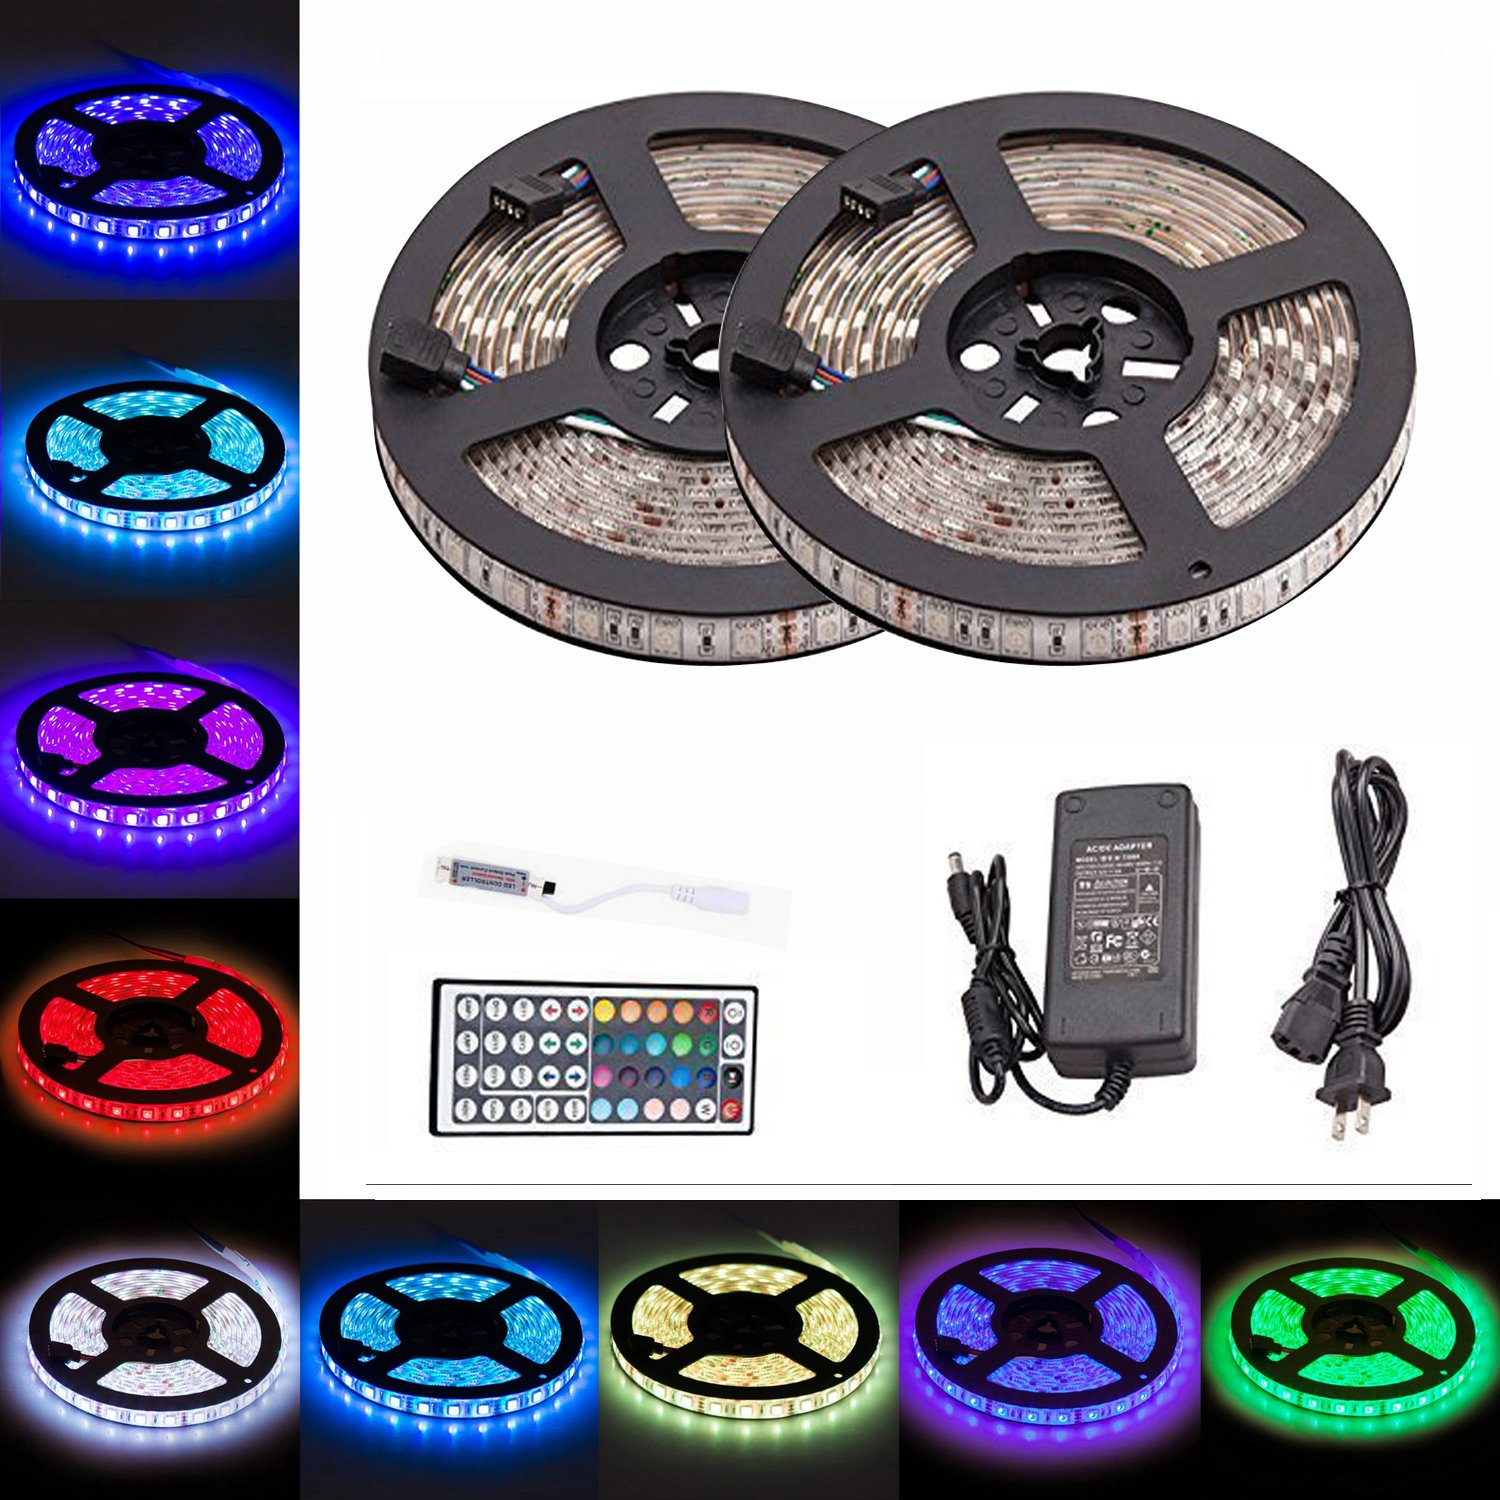 LTROP 2 Reels 12V 32.8ft Waterproof Flexible RGB LED Strip Light Kit, Color Changing SMD5050 300 LEDs, LED Strip Kit & Mini 44-key IR Controller + 12V 5A Power Supply, Adhesive Light Strips by LTROP